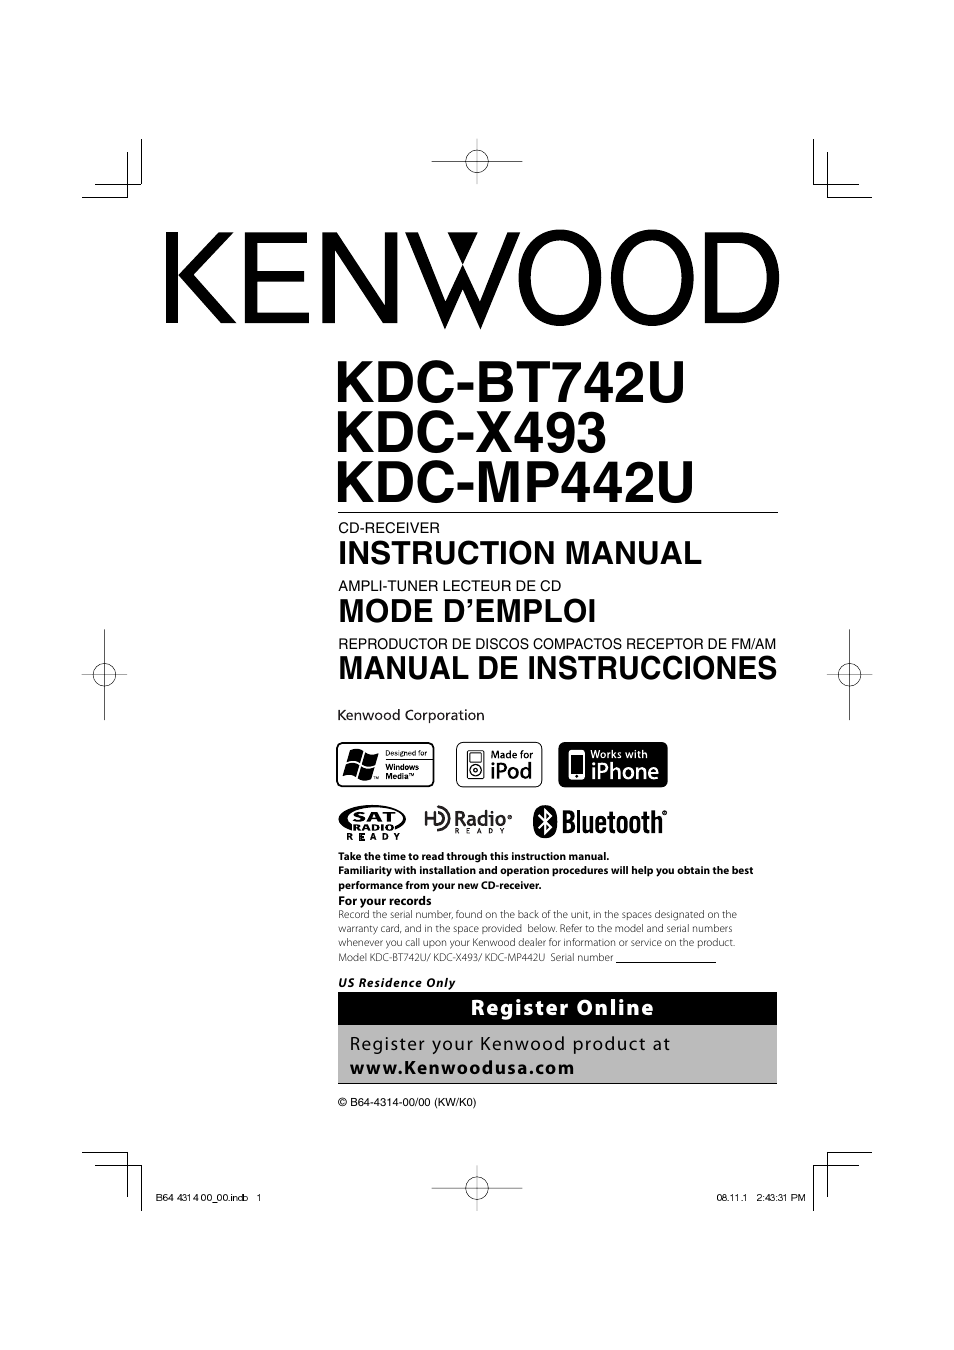 kenwood kdc 138 radio wiring diagram kenwood kdc 138 radio